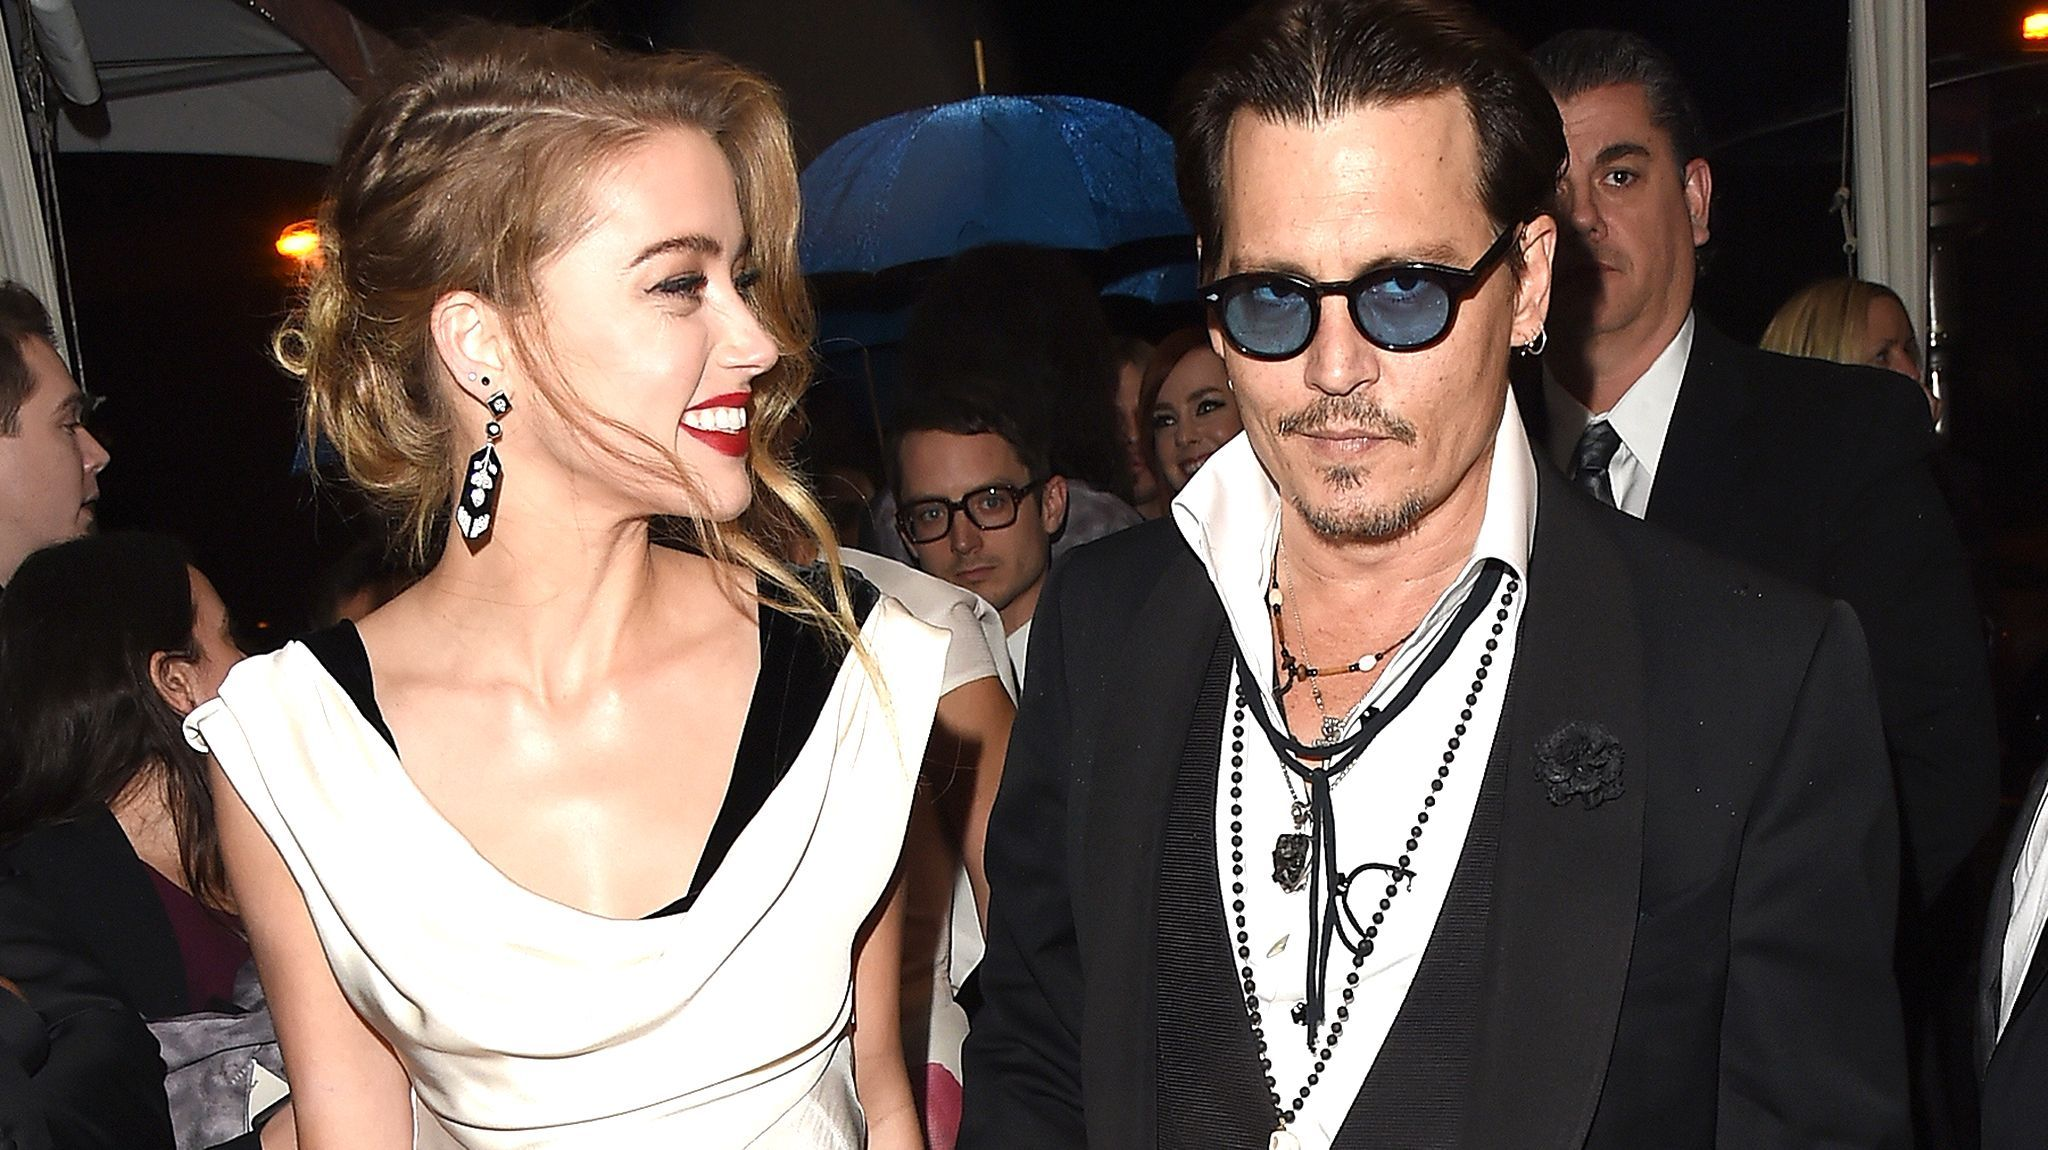 Did Johnny Depp Change His Slim Amber Heard Knuckle Tattoo To Scum Johnny Depp Johnny Amber Heard